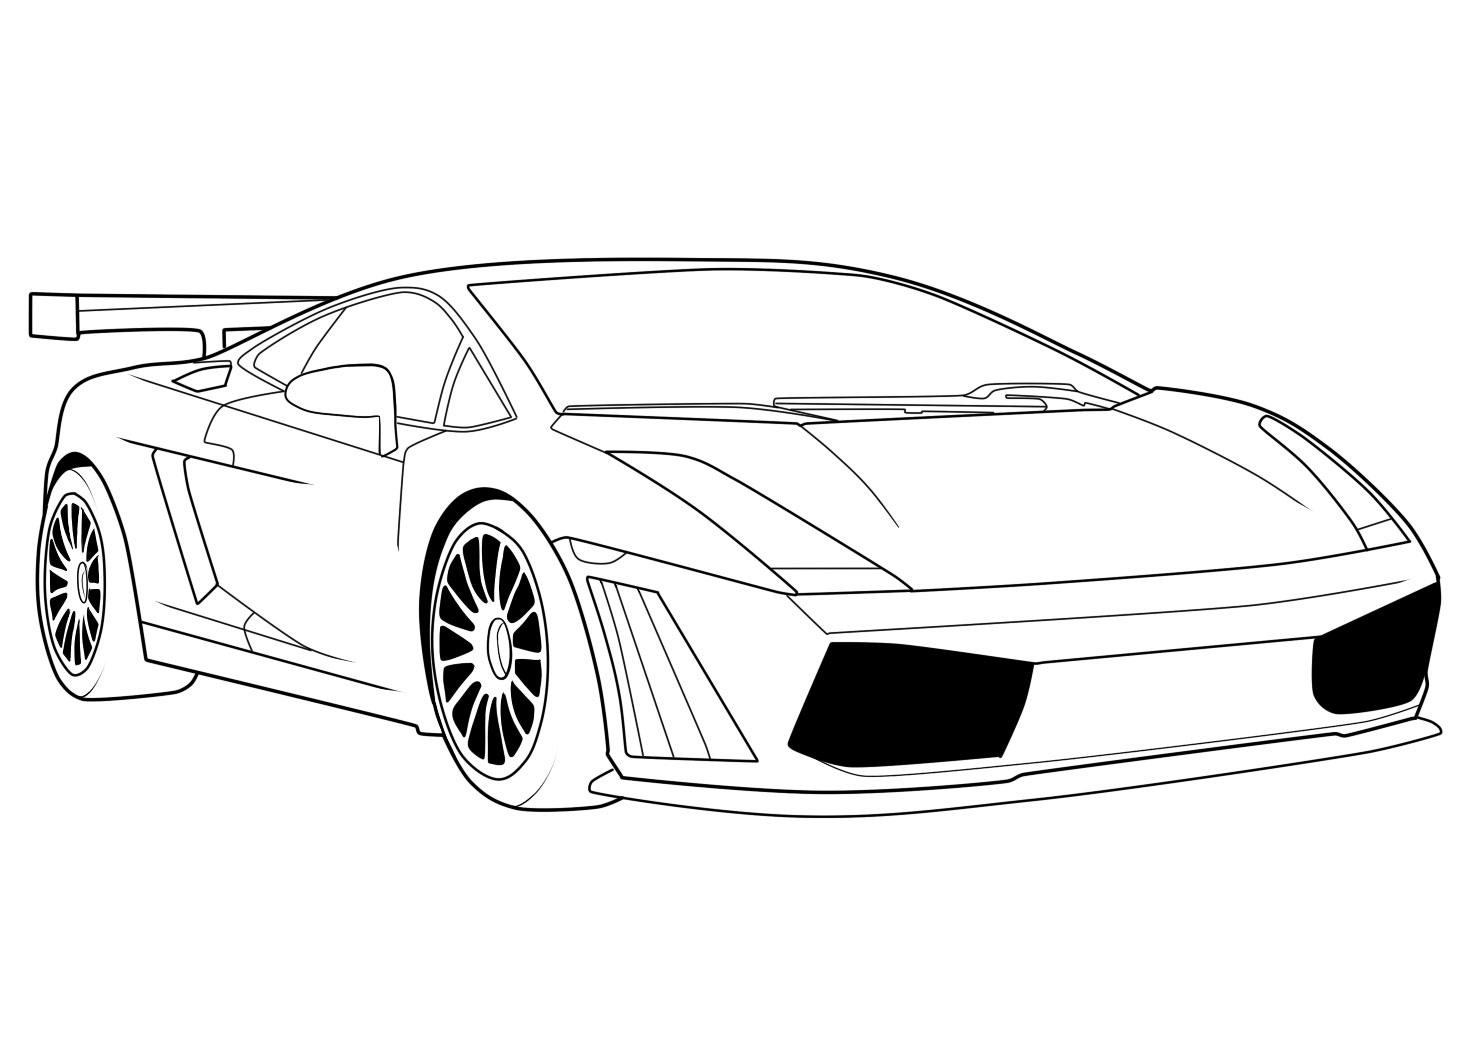 kids coloring pages cars coloring pages for boys cars printable coloring home cars pages kids coloring